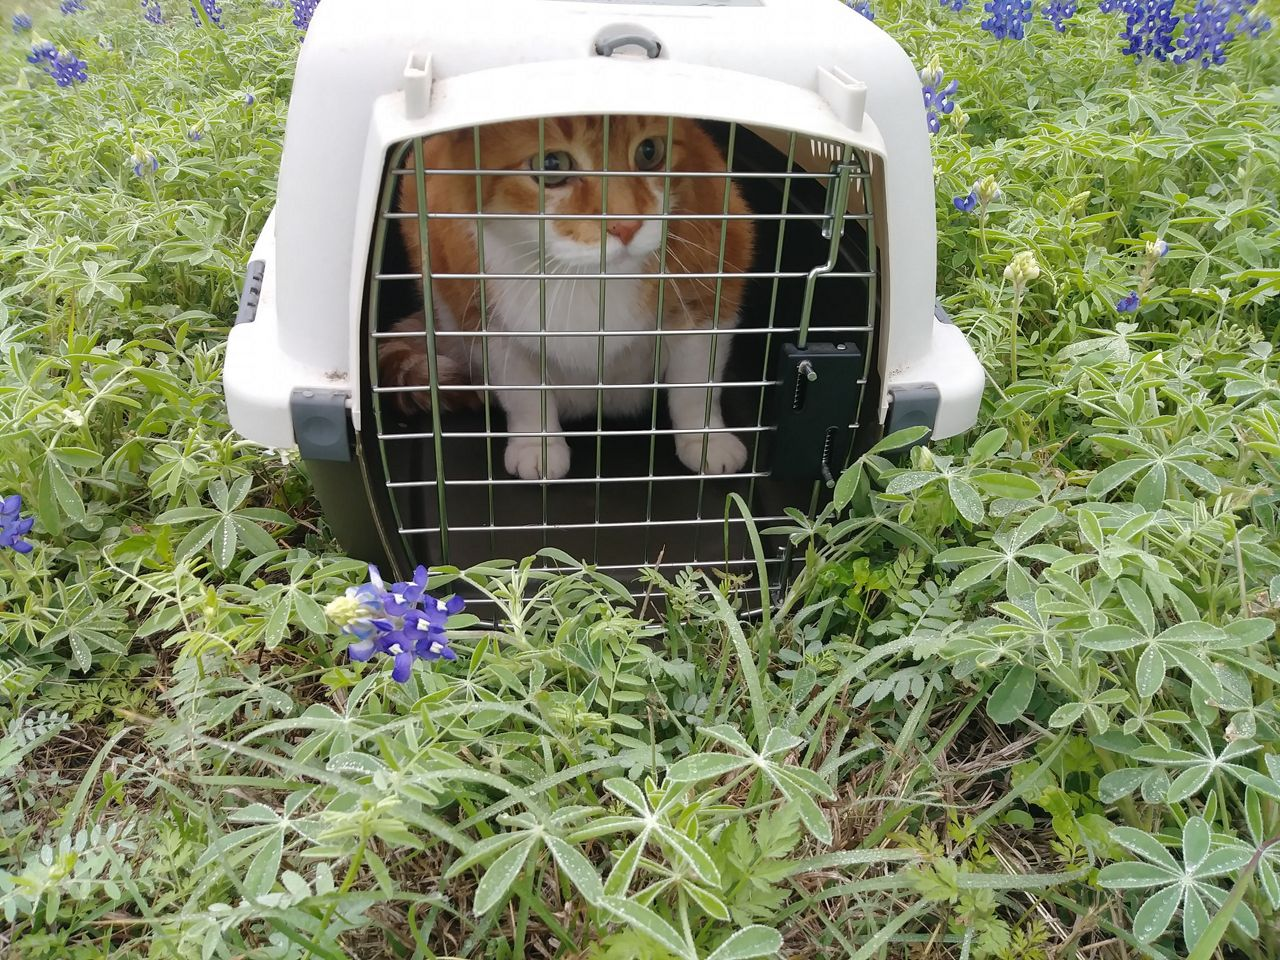 Cat in crate in wildflowers.